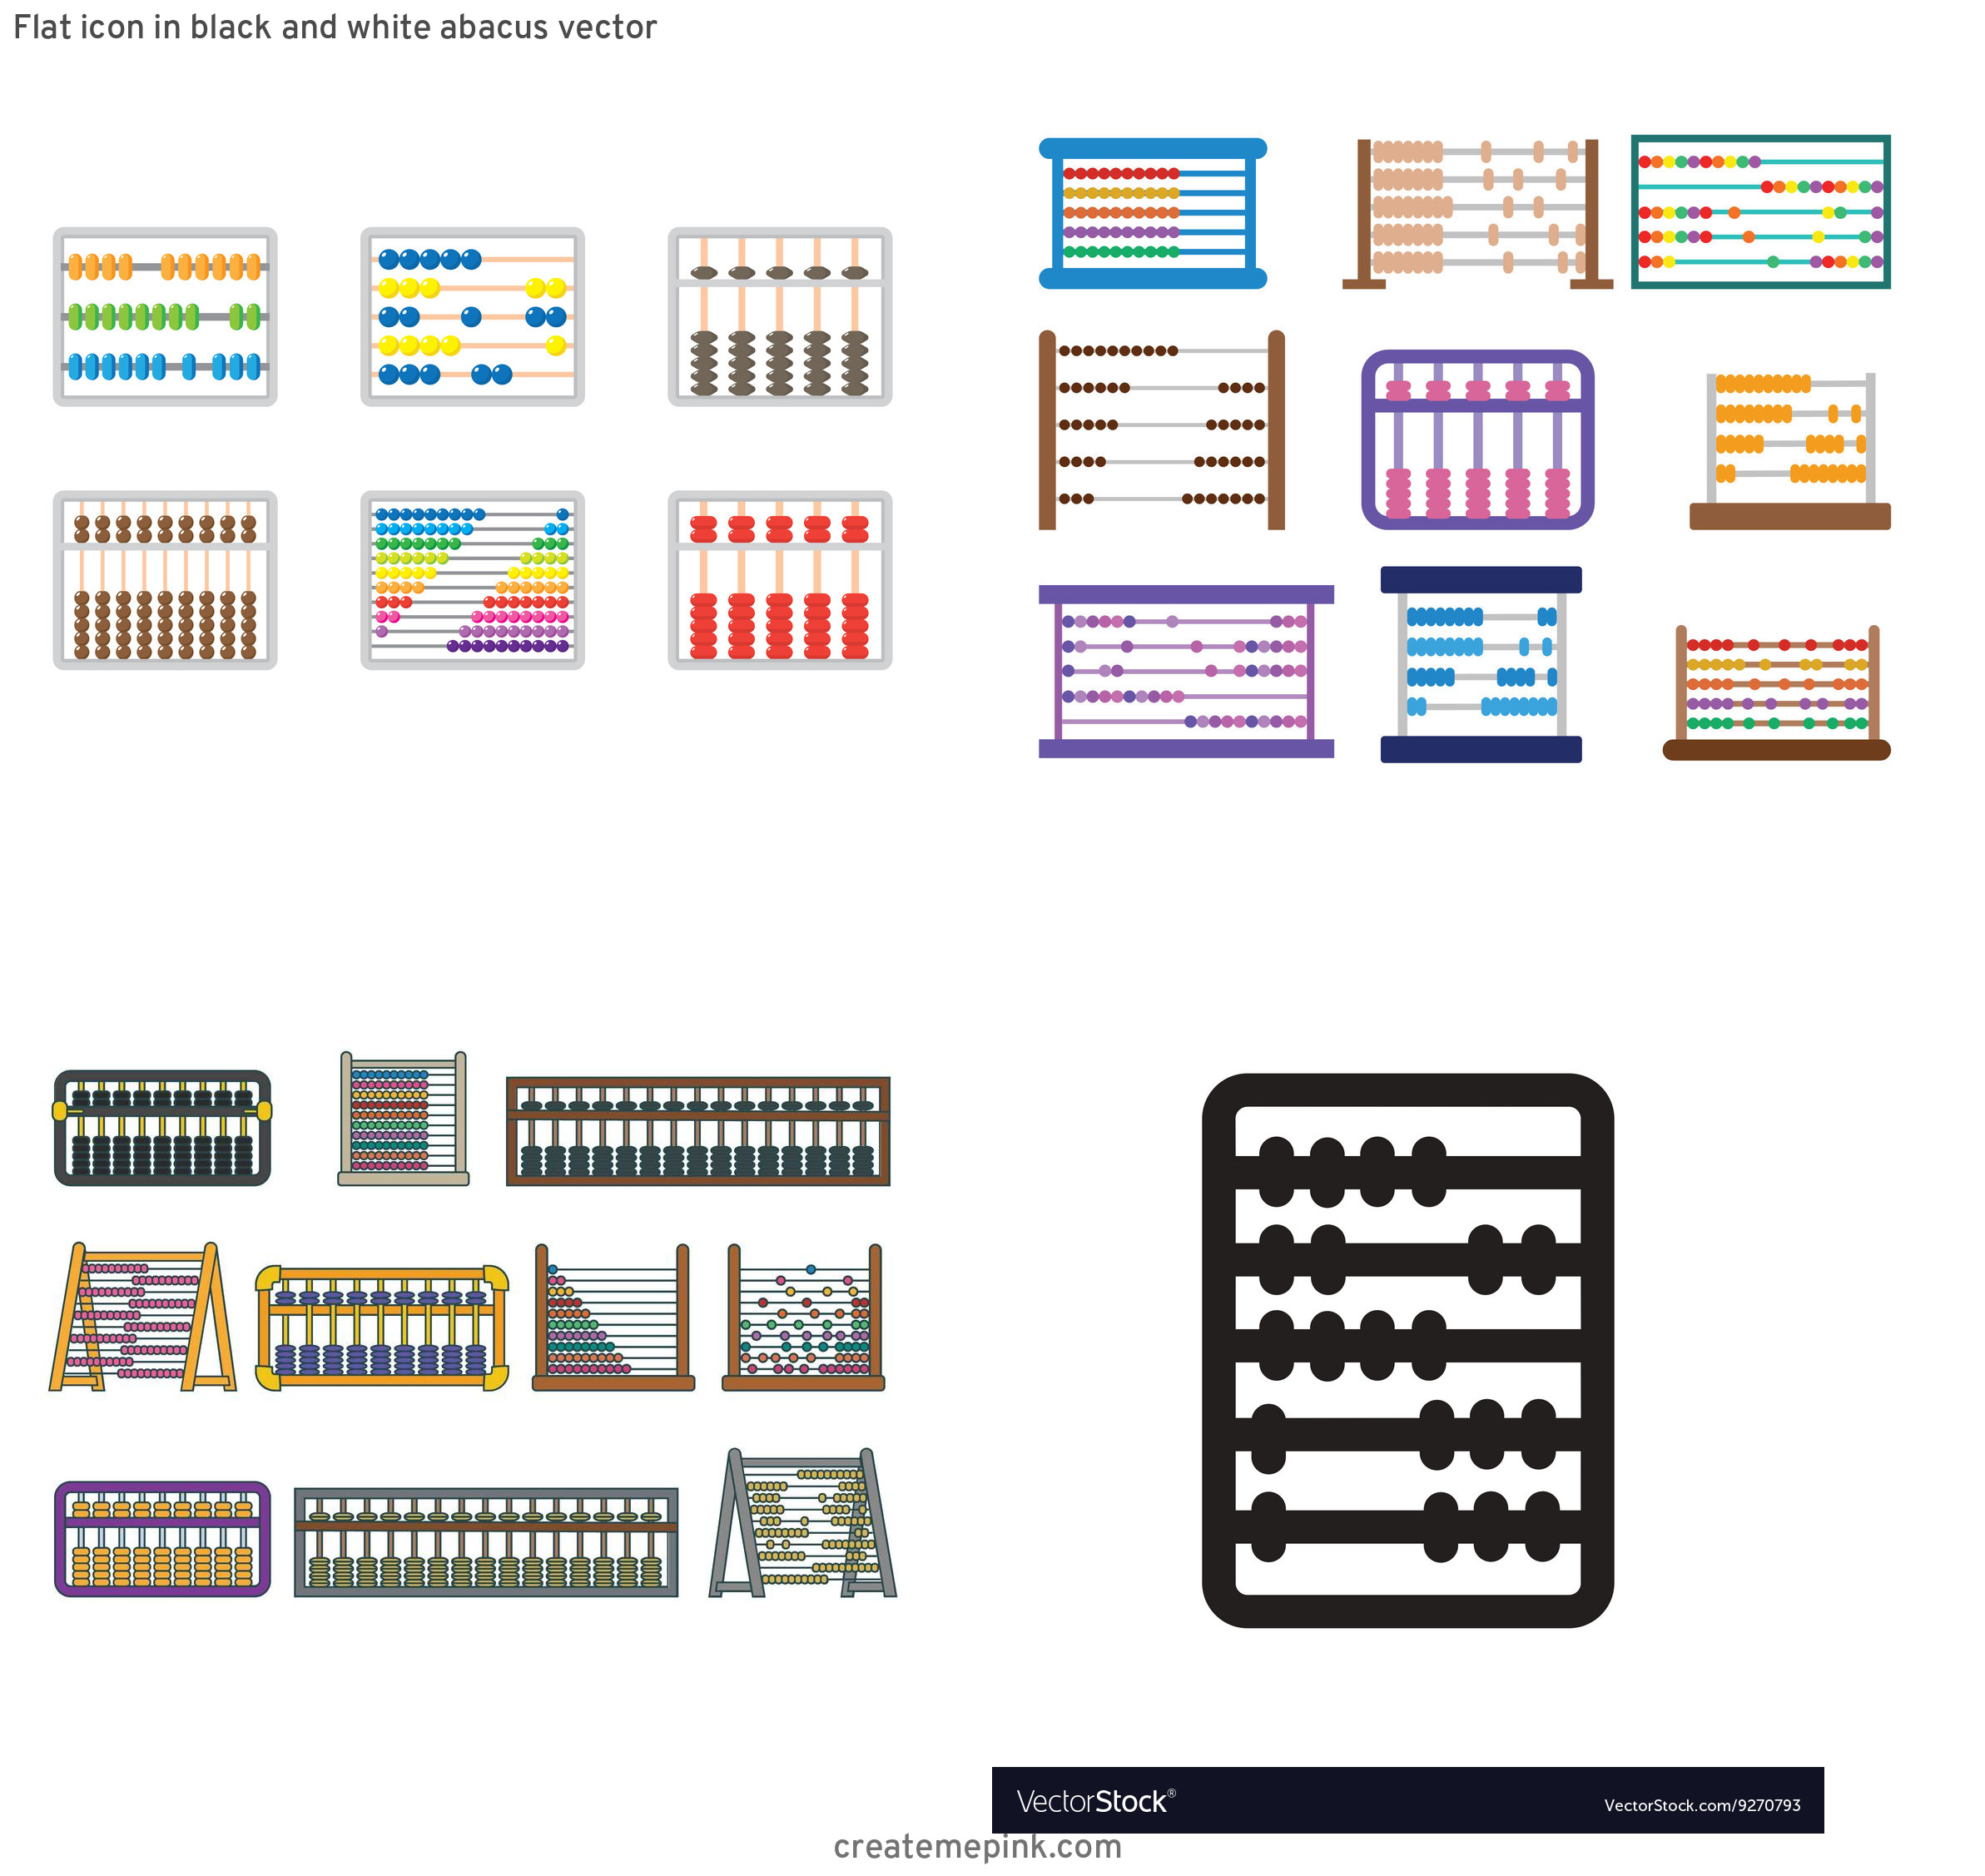 Abacus Vector Art: Flat Icon In Black And White Abacus Vector